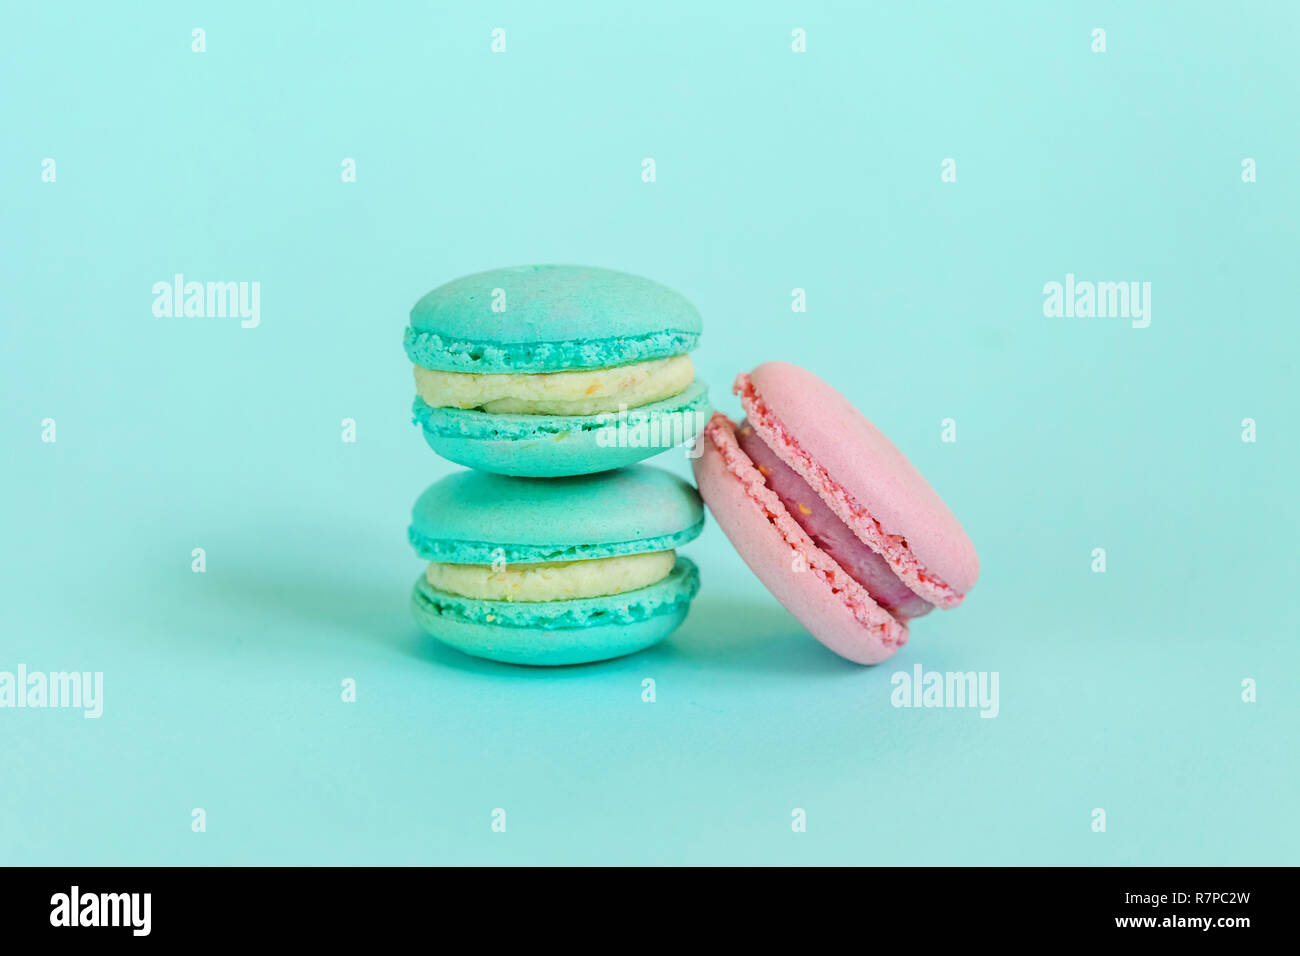 Sweet Almond Colorful Pink Blue Macaron Or Macaroon Dessert Cake Isolated On Trendy Blue Pastel Background French Sweet Cookie Minimal Food Bakery C Stock Photo Alamy